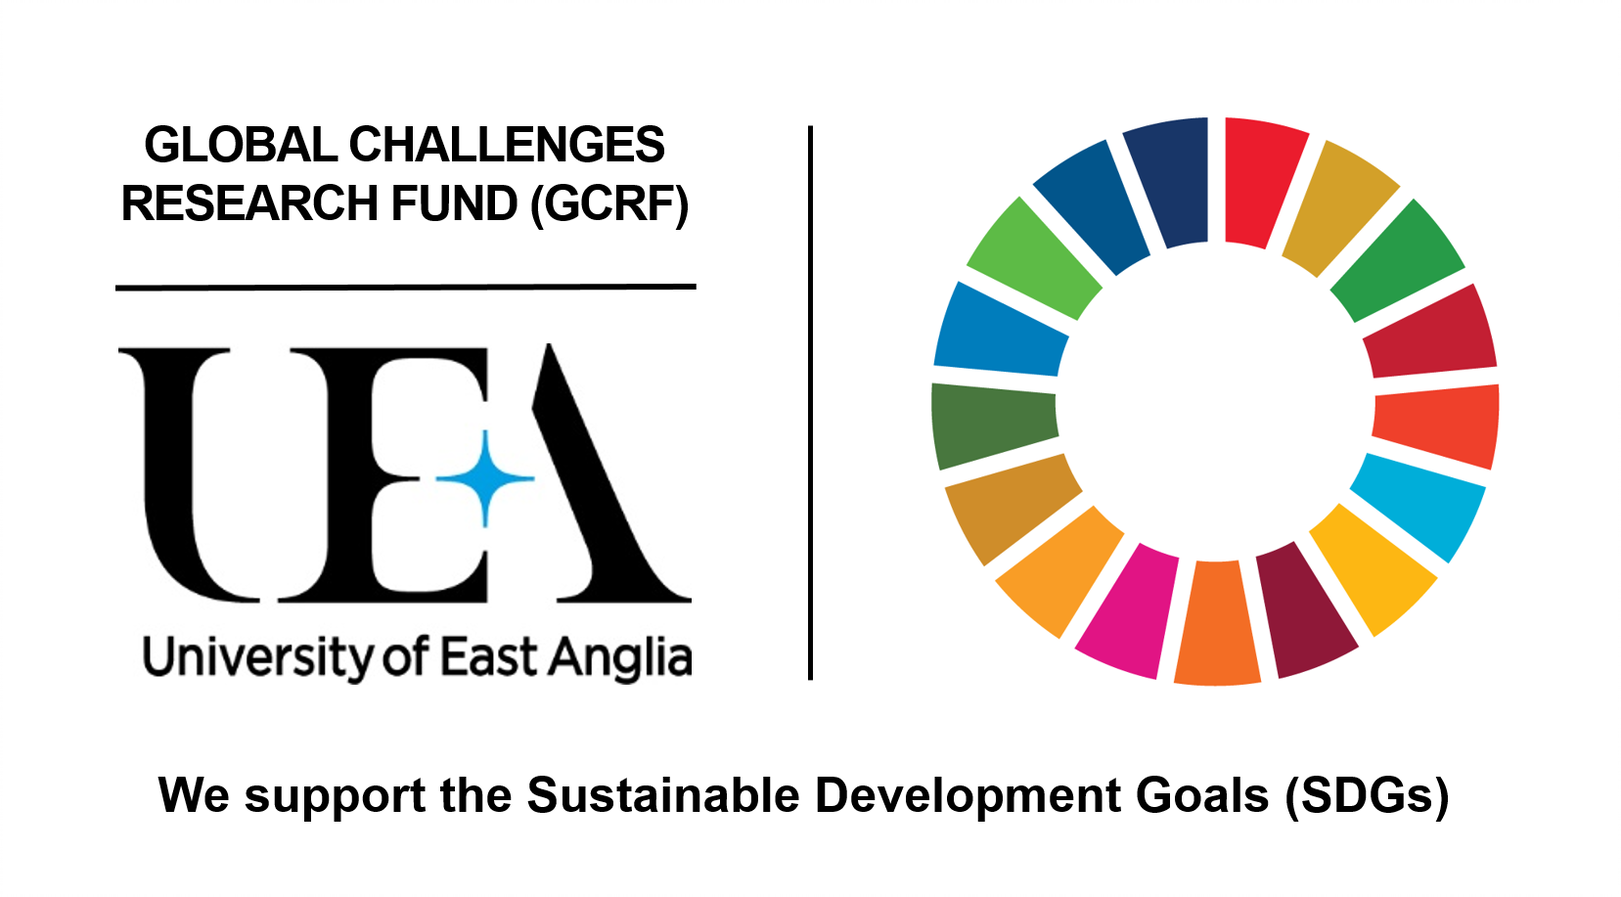 Global Challenges Research Fund (GCRF) - UEA. We support the sustainable development goals.